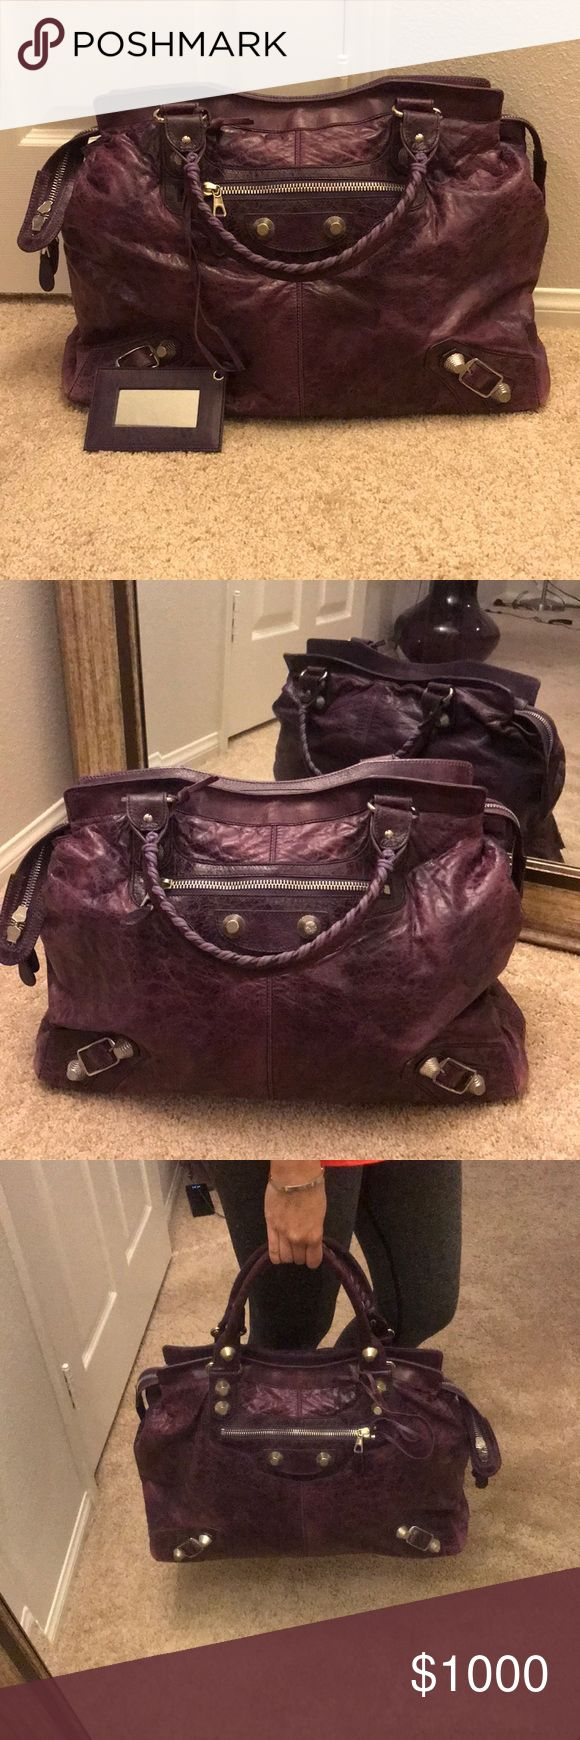 Balenciaga Weekender XL Bag in Purple This is an oversized weekender bag in a dark purple. The leather is super soft but is textured. It has silver big studs in Balenciaga fashion. Great condition, there is only one minor stain on the inside of the bag but barely visible. Bought in 2009 but only used like 10 times. It is totally authentic, and comes with leather framed mirror.  Measurements: 17 inches wide, 13 inches high without handle, 6 inches depth. Balenciaga Bags Totes